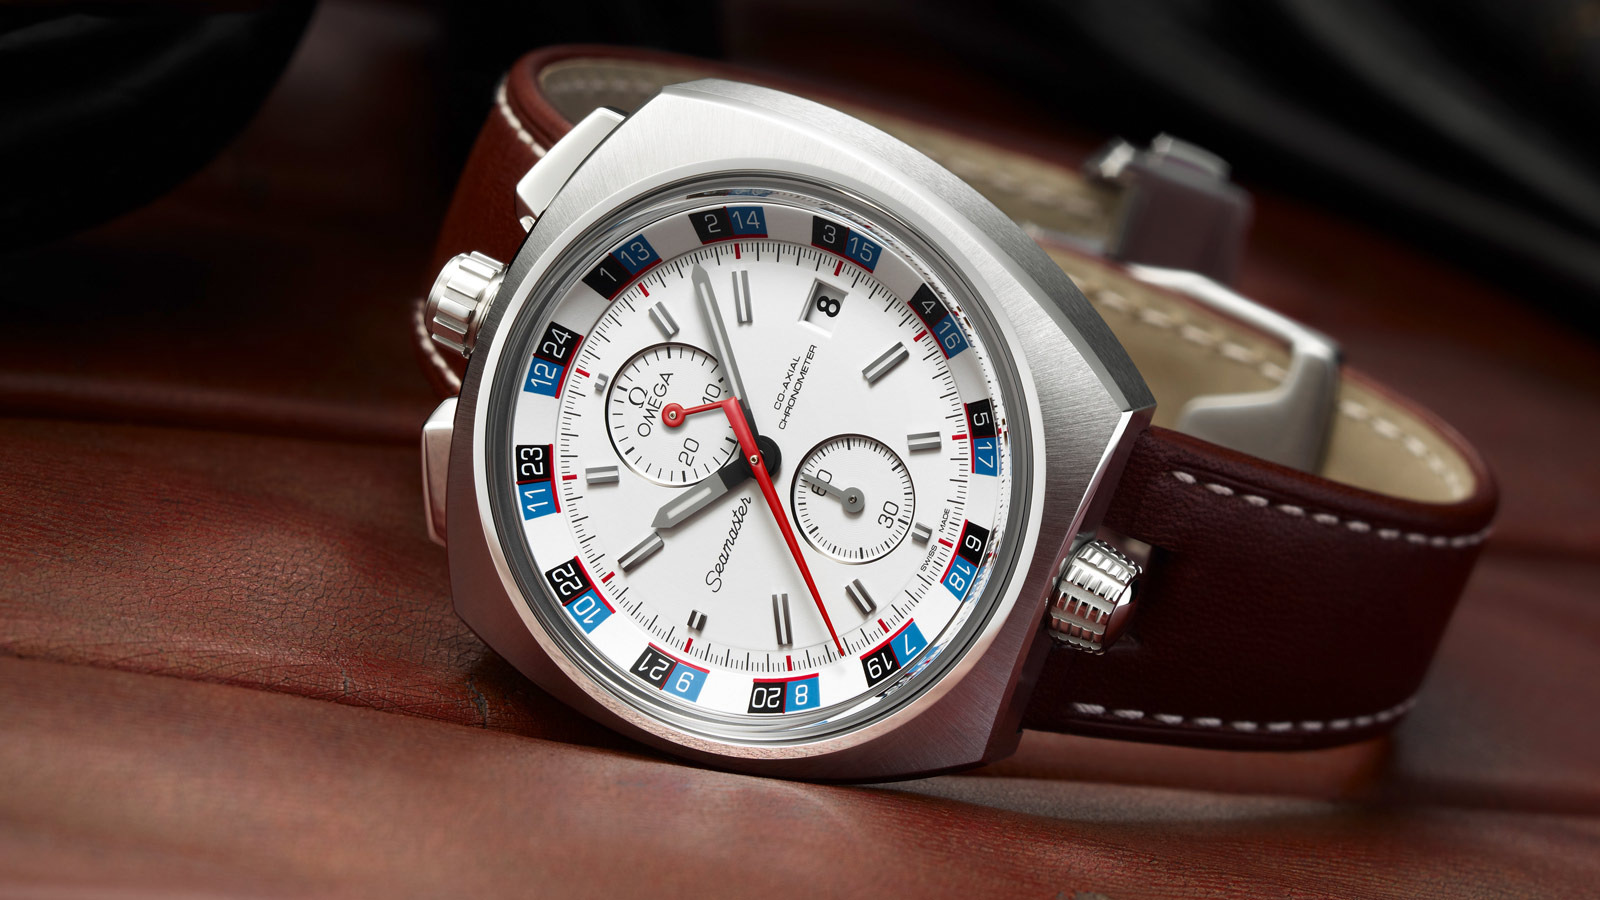 Seamaster ブルヘッド Bullhead Co‑Axial Chronograph 43 x 43 mm - 225.12.43.50.04.001 - ビュー 3